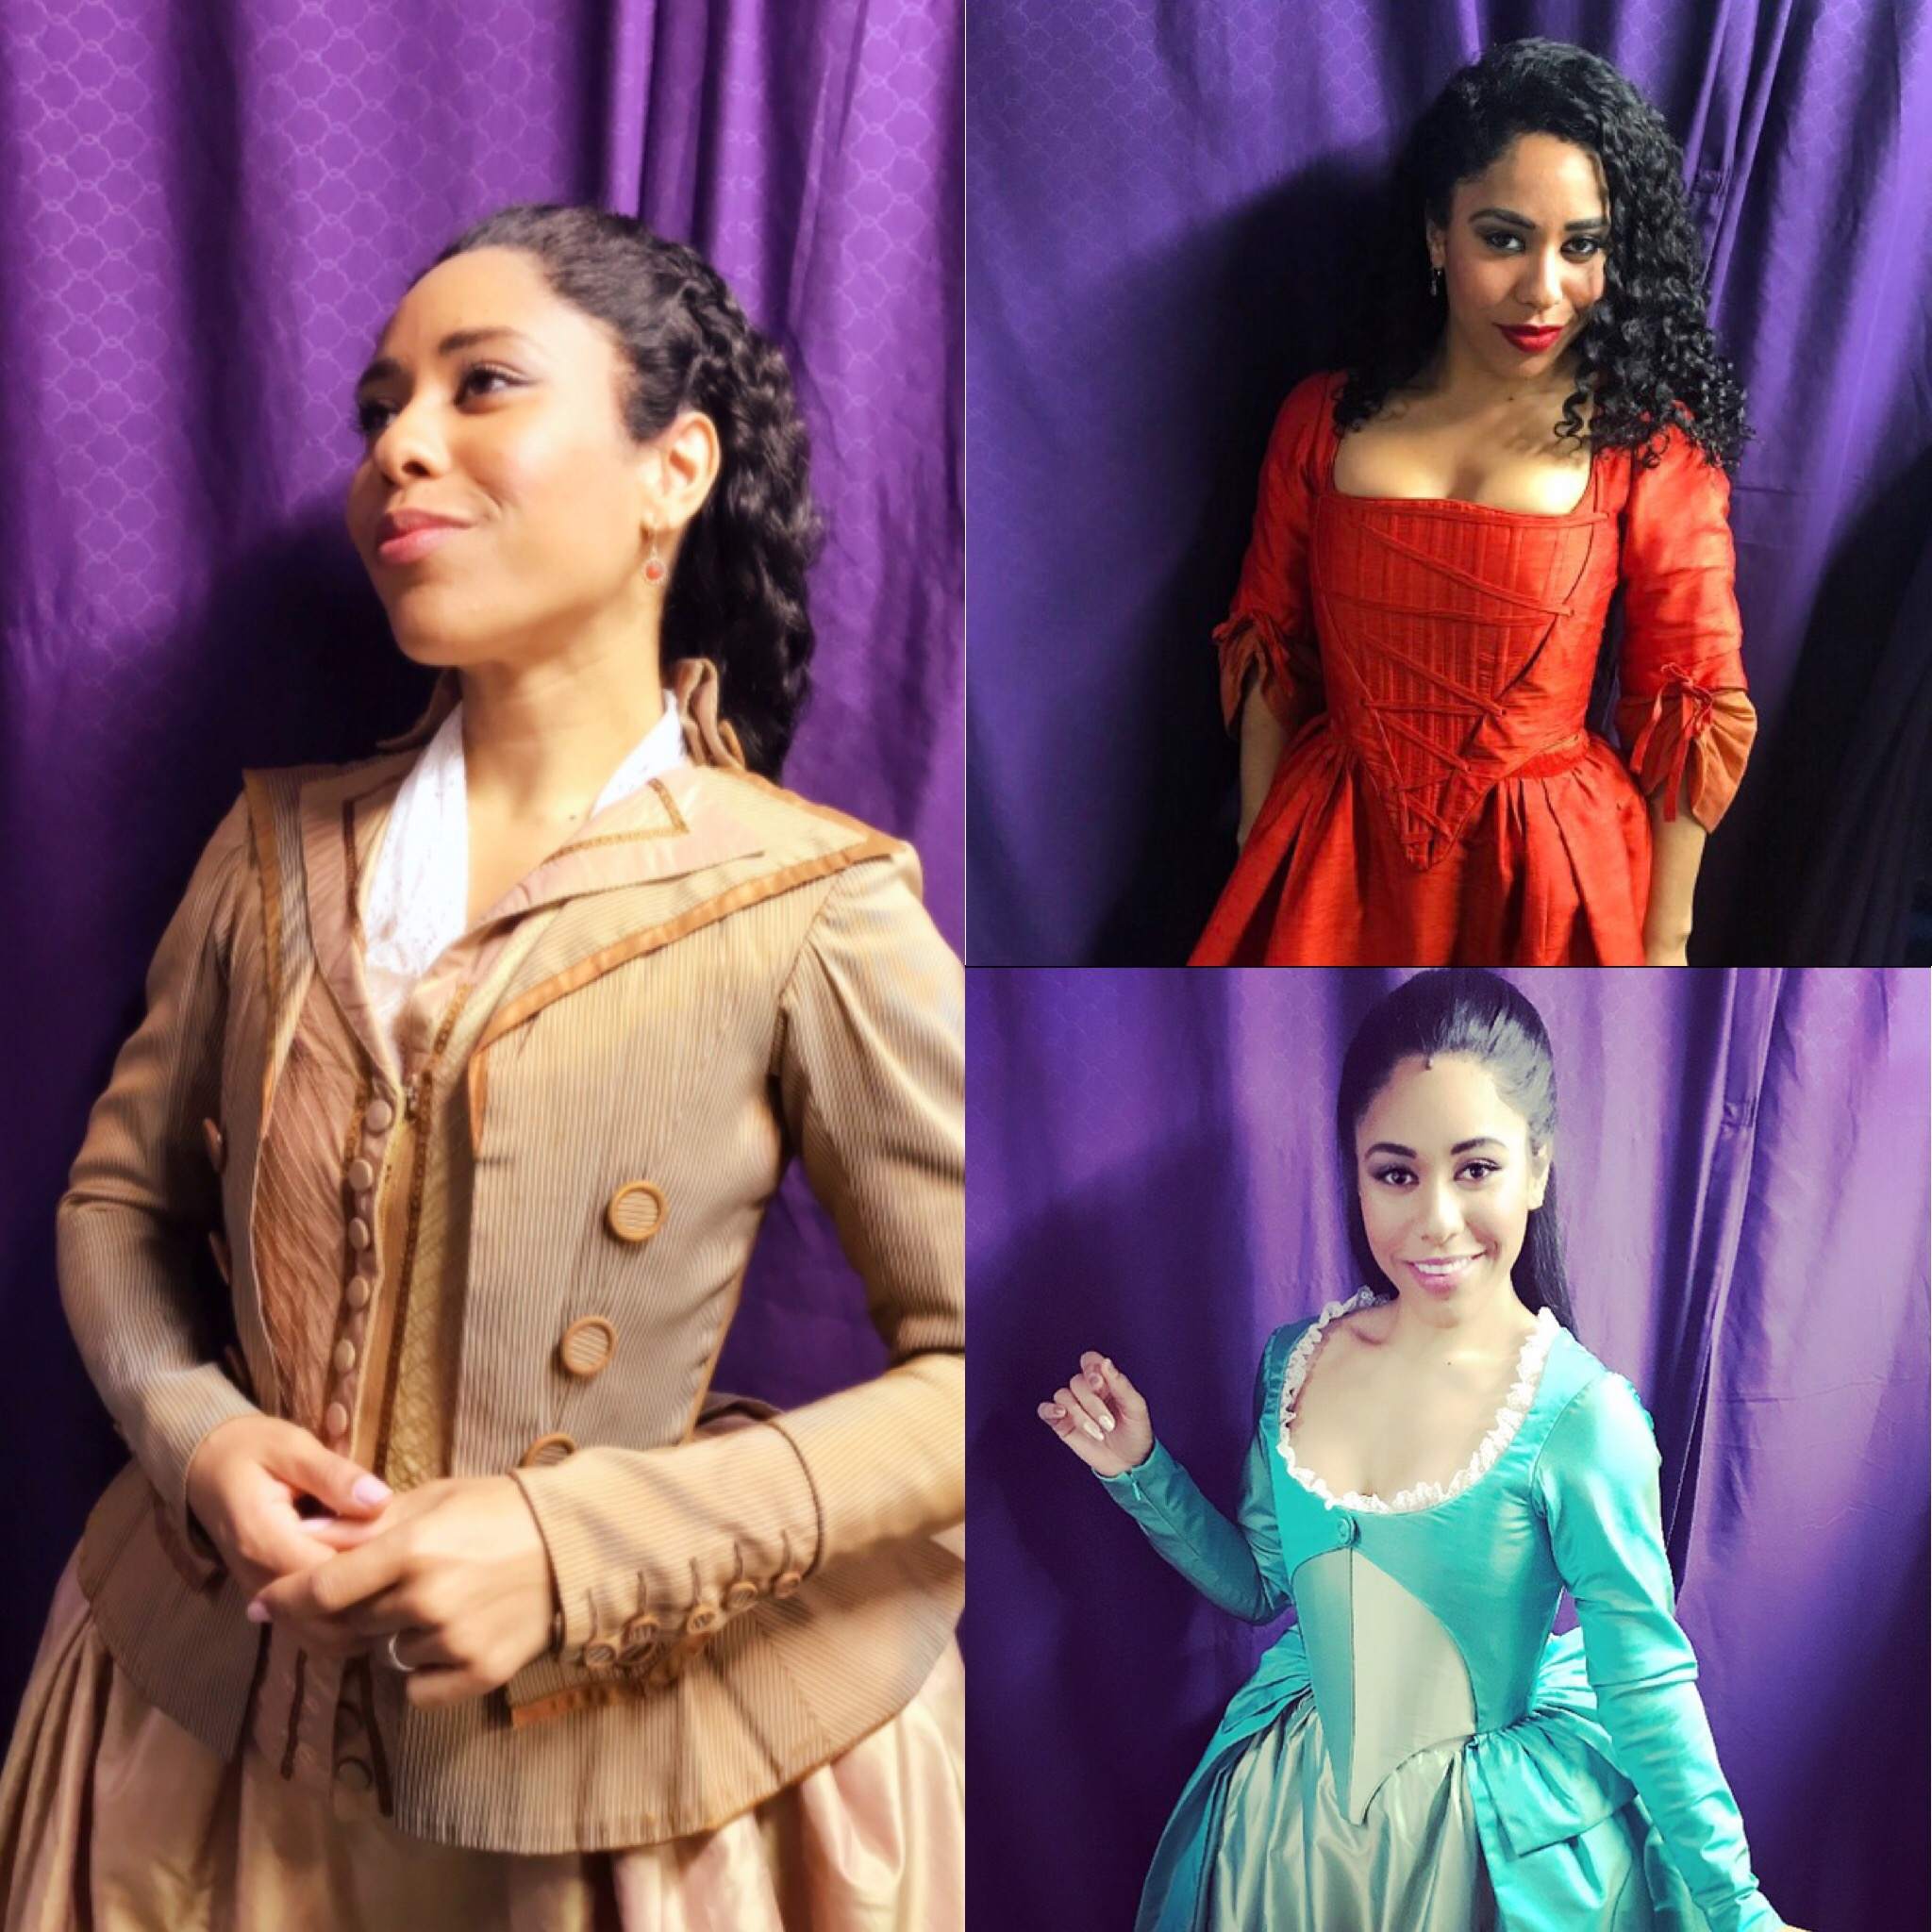 Erin Clemons as Peggy/Maria, Eliza, and Angelica in  Hamilton